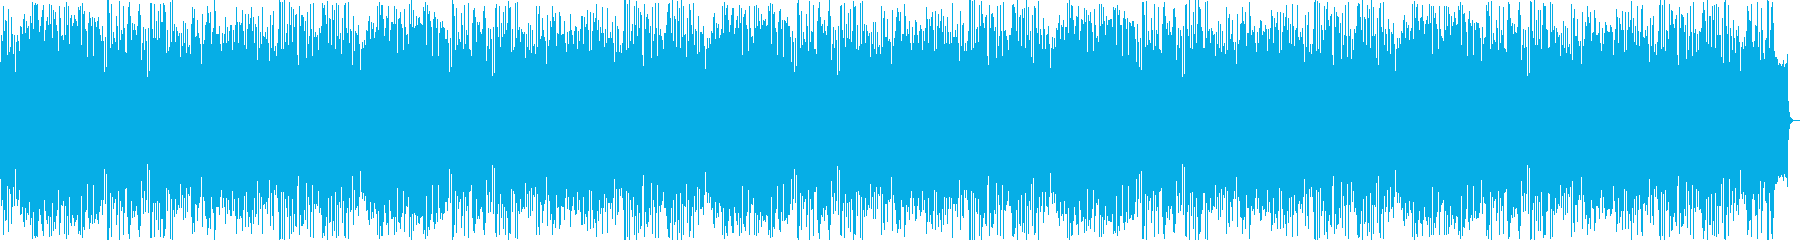 Bright and refreshing rhythmic music's reproduced waveform